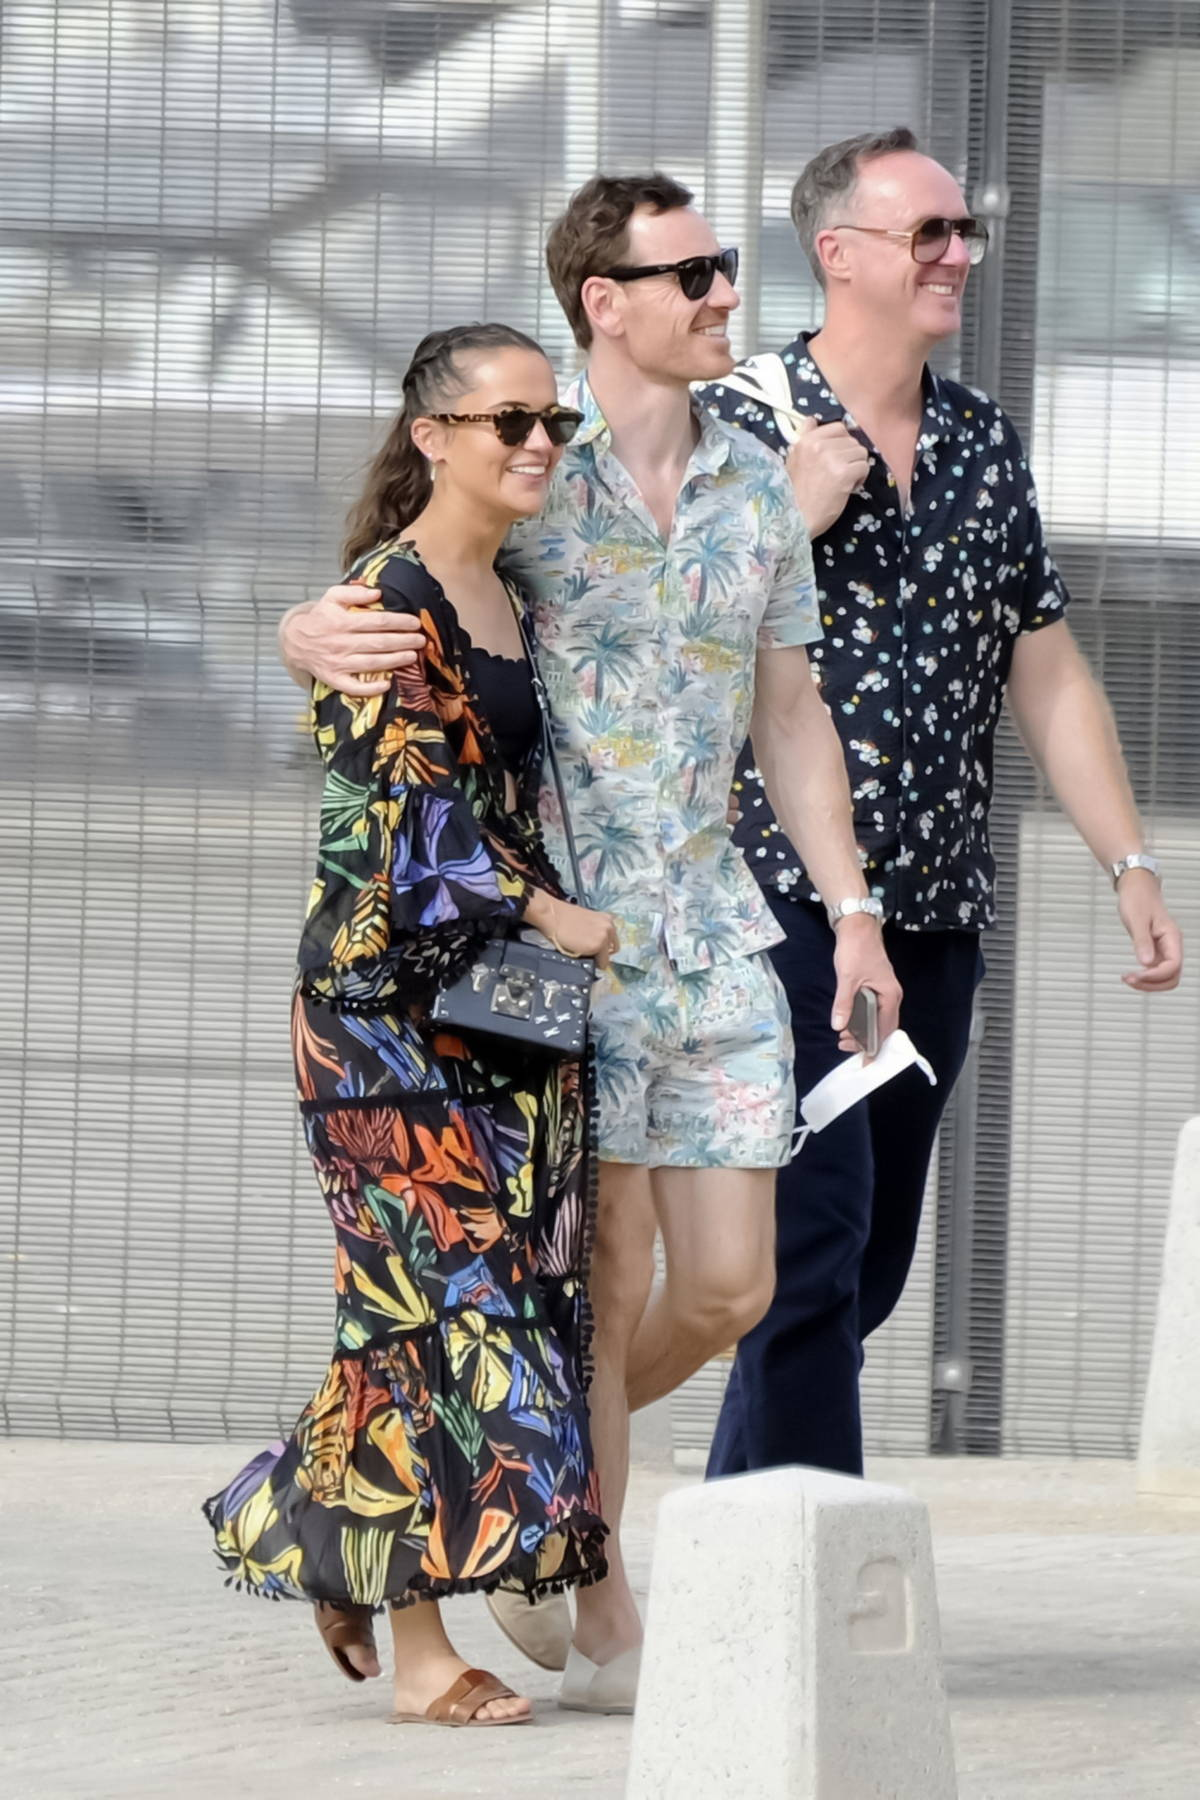 Alicia Vikander and Michael Fassbender step out for stroll with friends in Ibiza, Spain